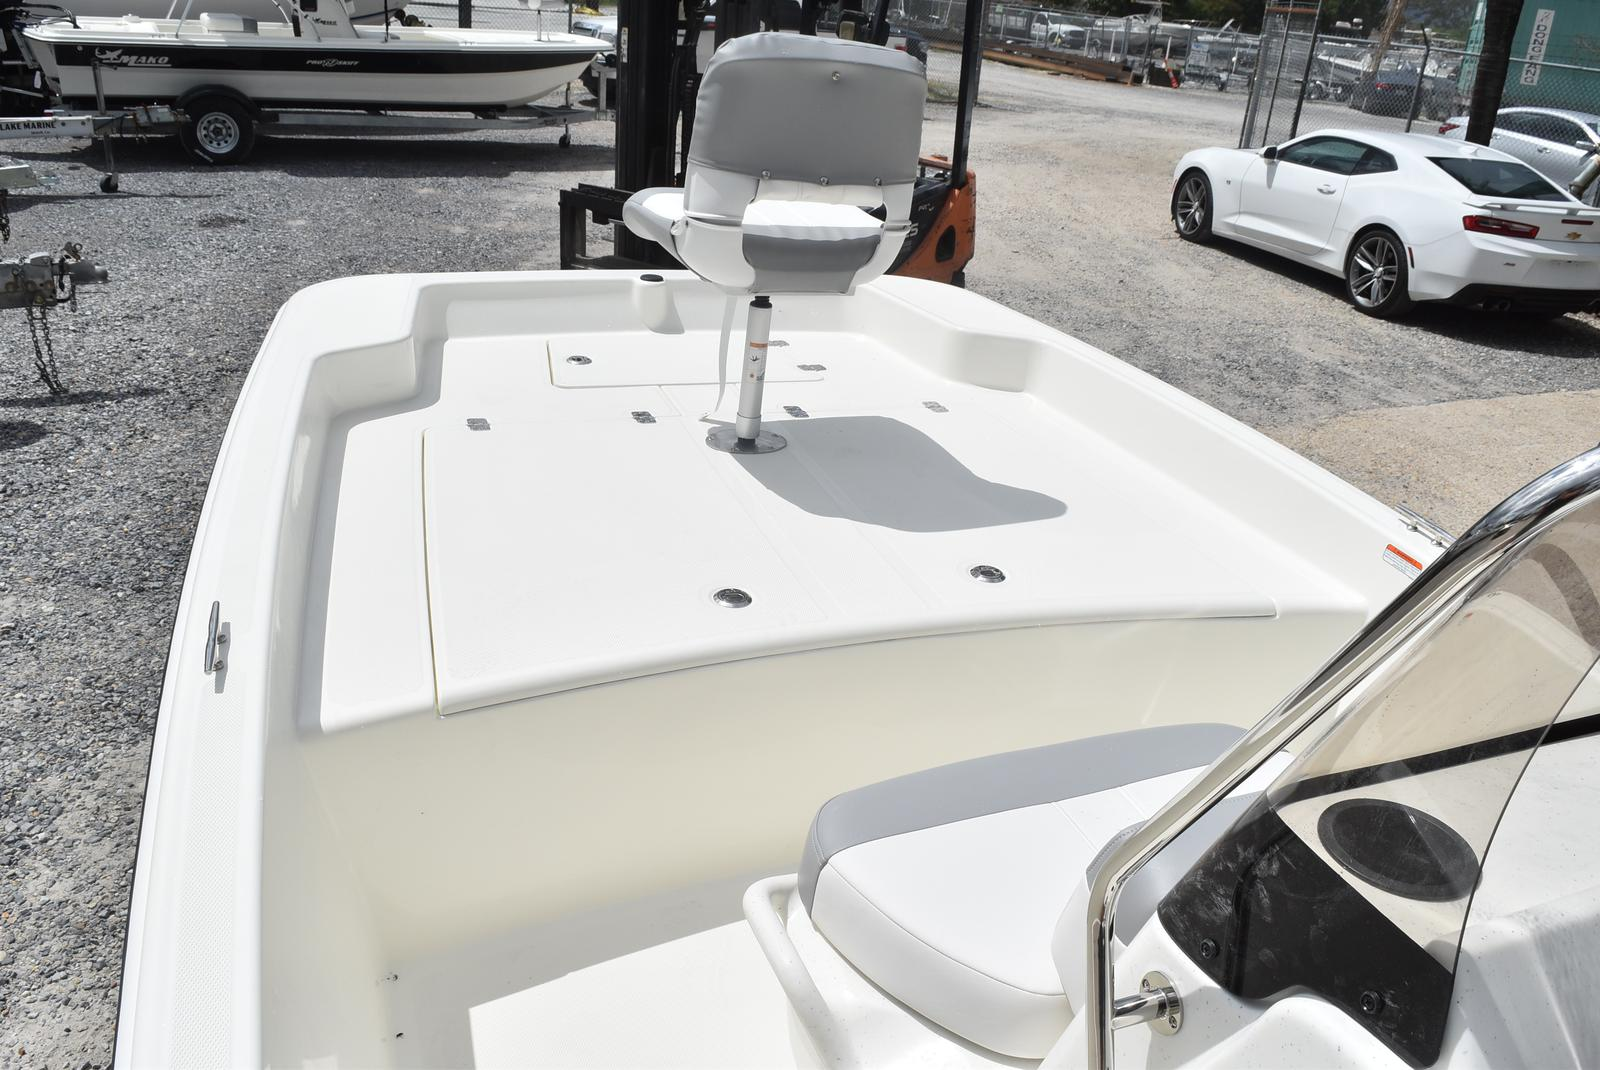 2020 Mako boat for sale, model of the boat is Pro Skiff 17, 75 ELPT & Image # 435 of 702